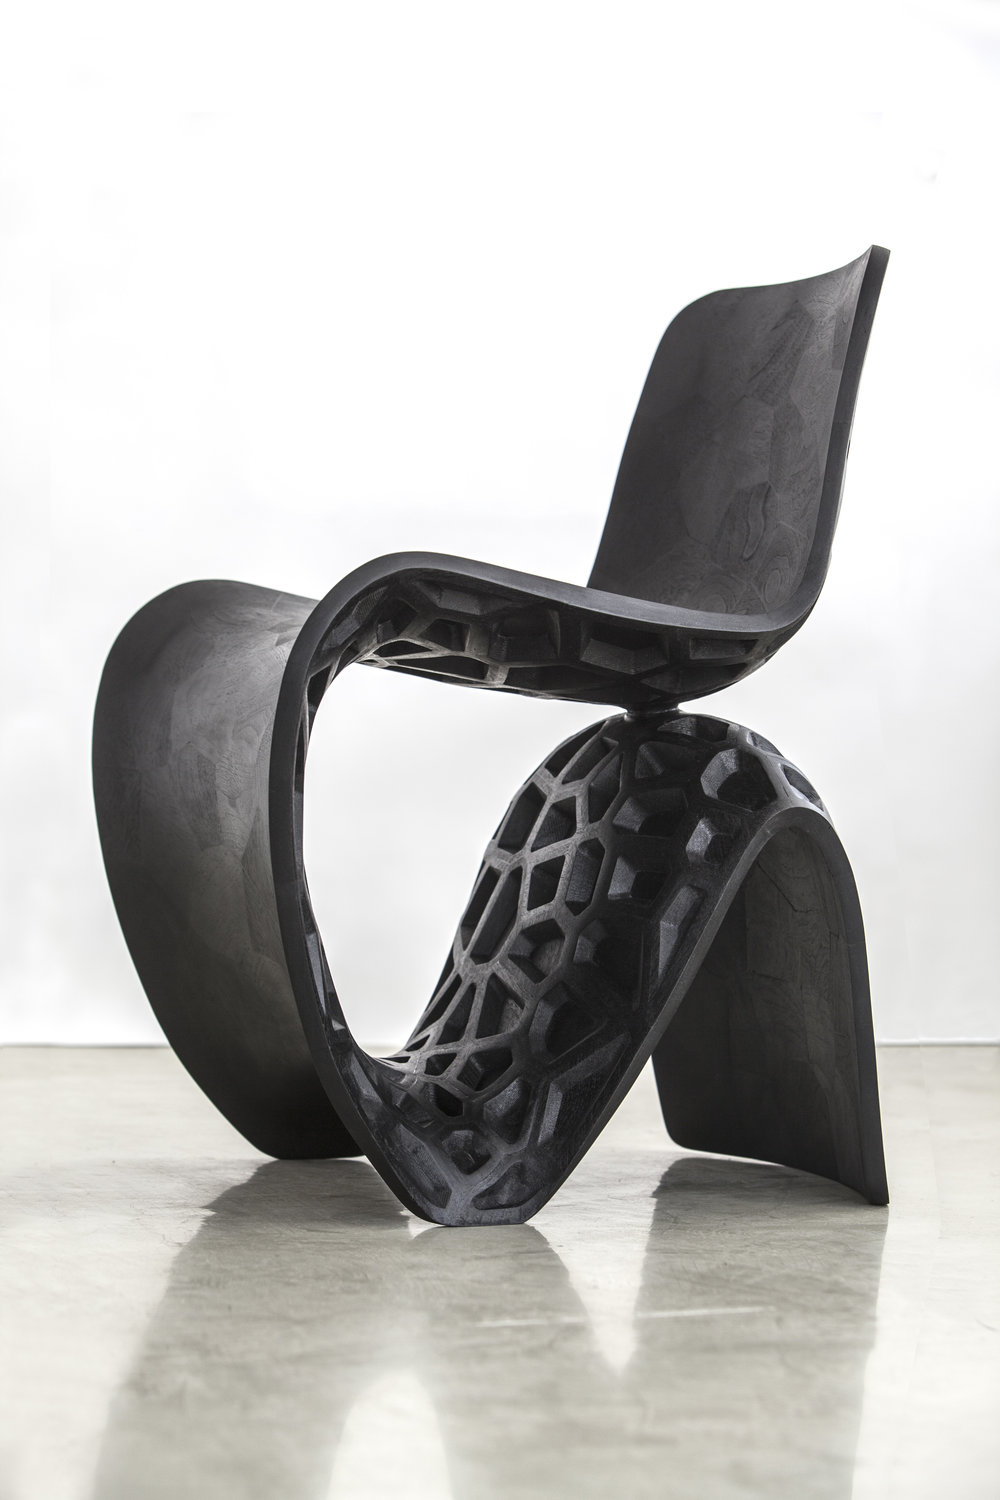 Joris Laarman,   Maker Chair (Voronoi) , 2014. Walnut. 30 3/4 x 23 5/8 x 25 1/2 in. Courtesy of the Artist and Friedman Benda, New York. 2016.JL.01. Photo: Friedman Benda, New York  METHOD: Digitally fabricated 3D parts, CNC milling machine